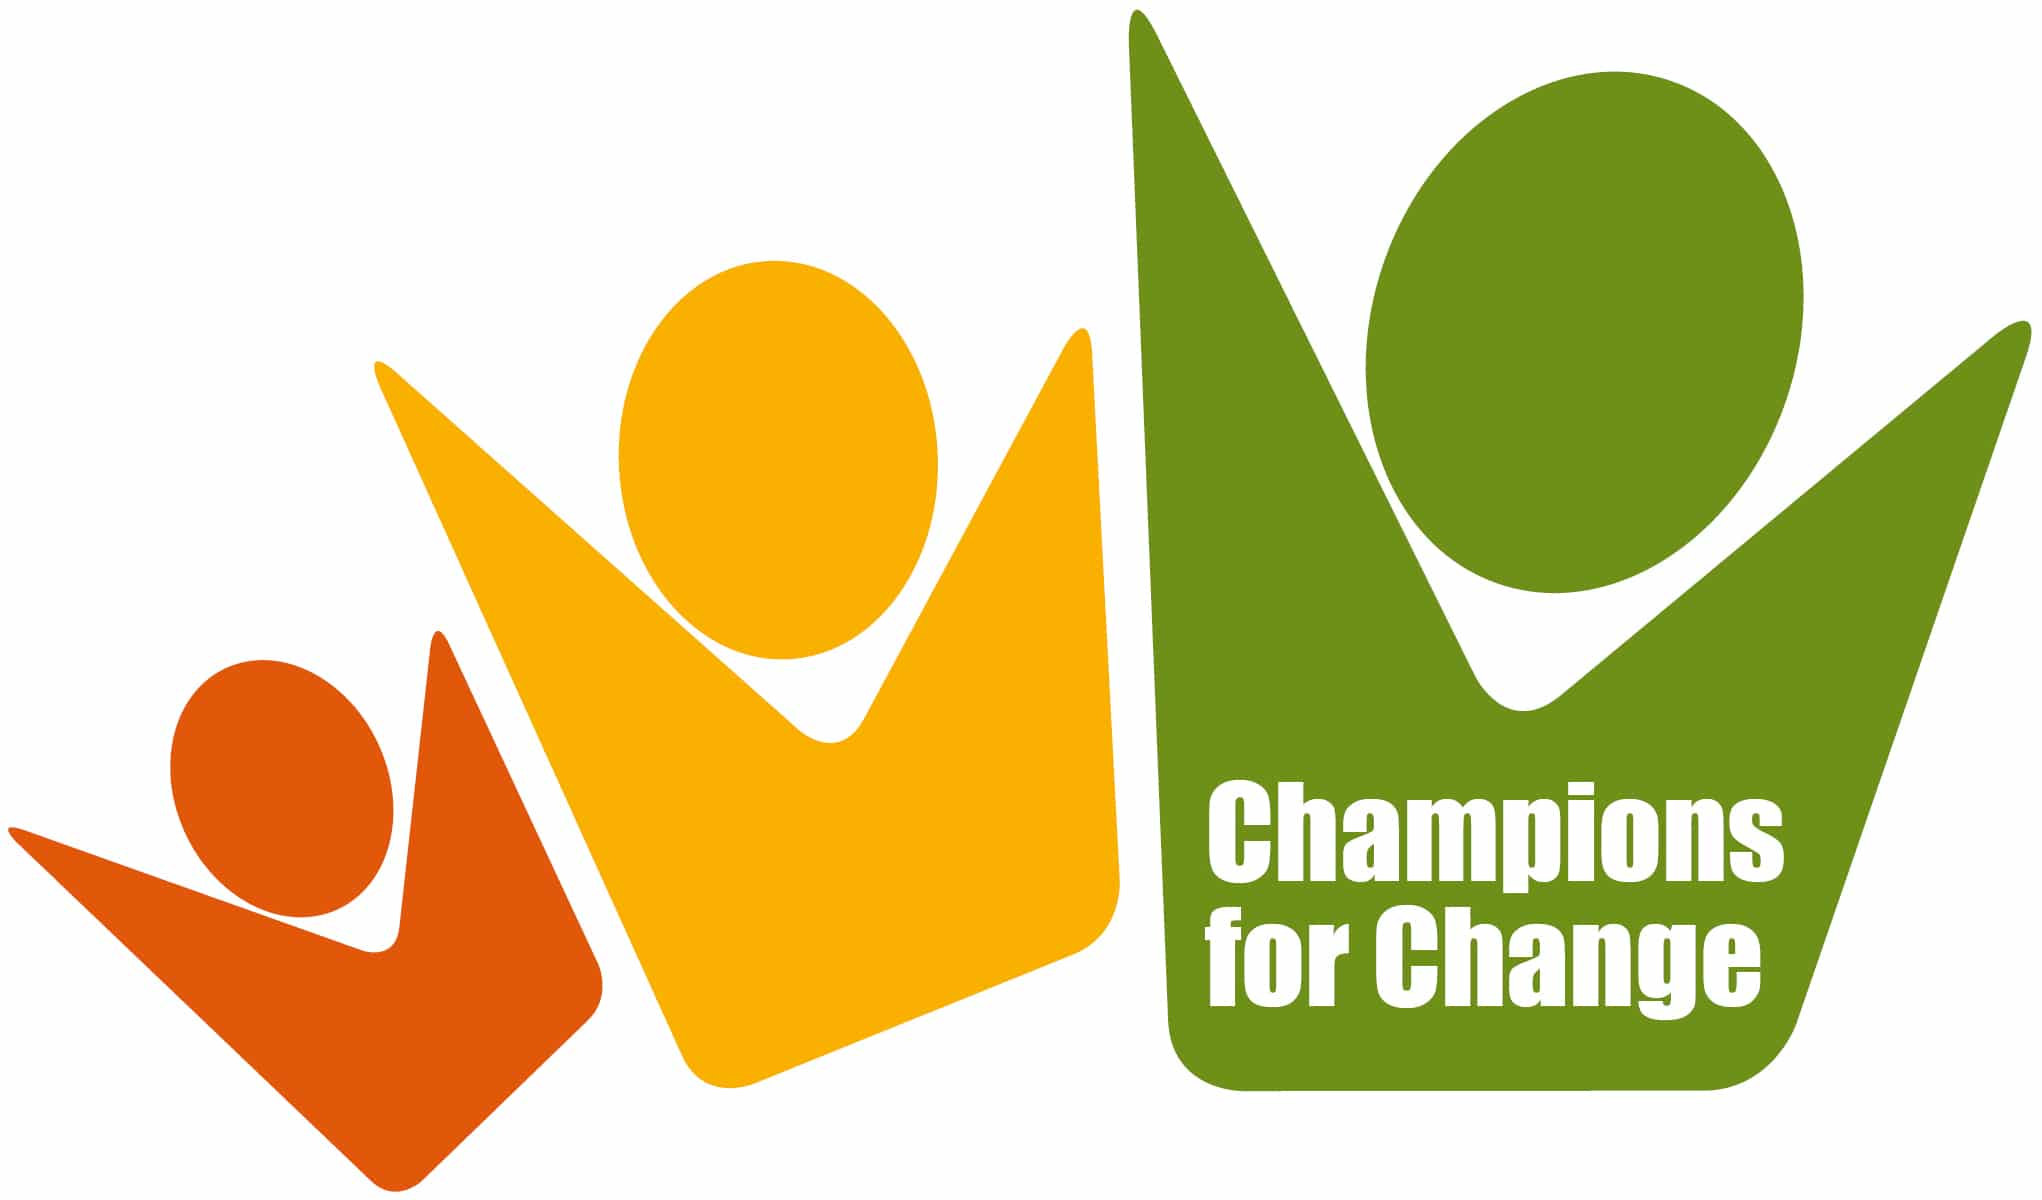 champions for change logo three people with their hands up